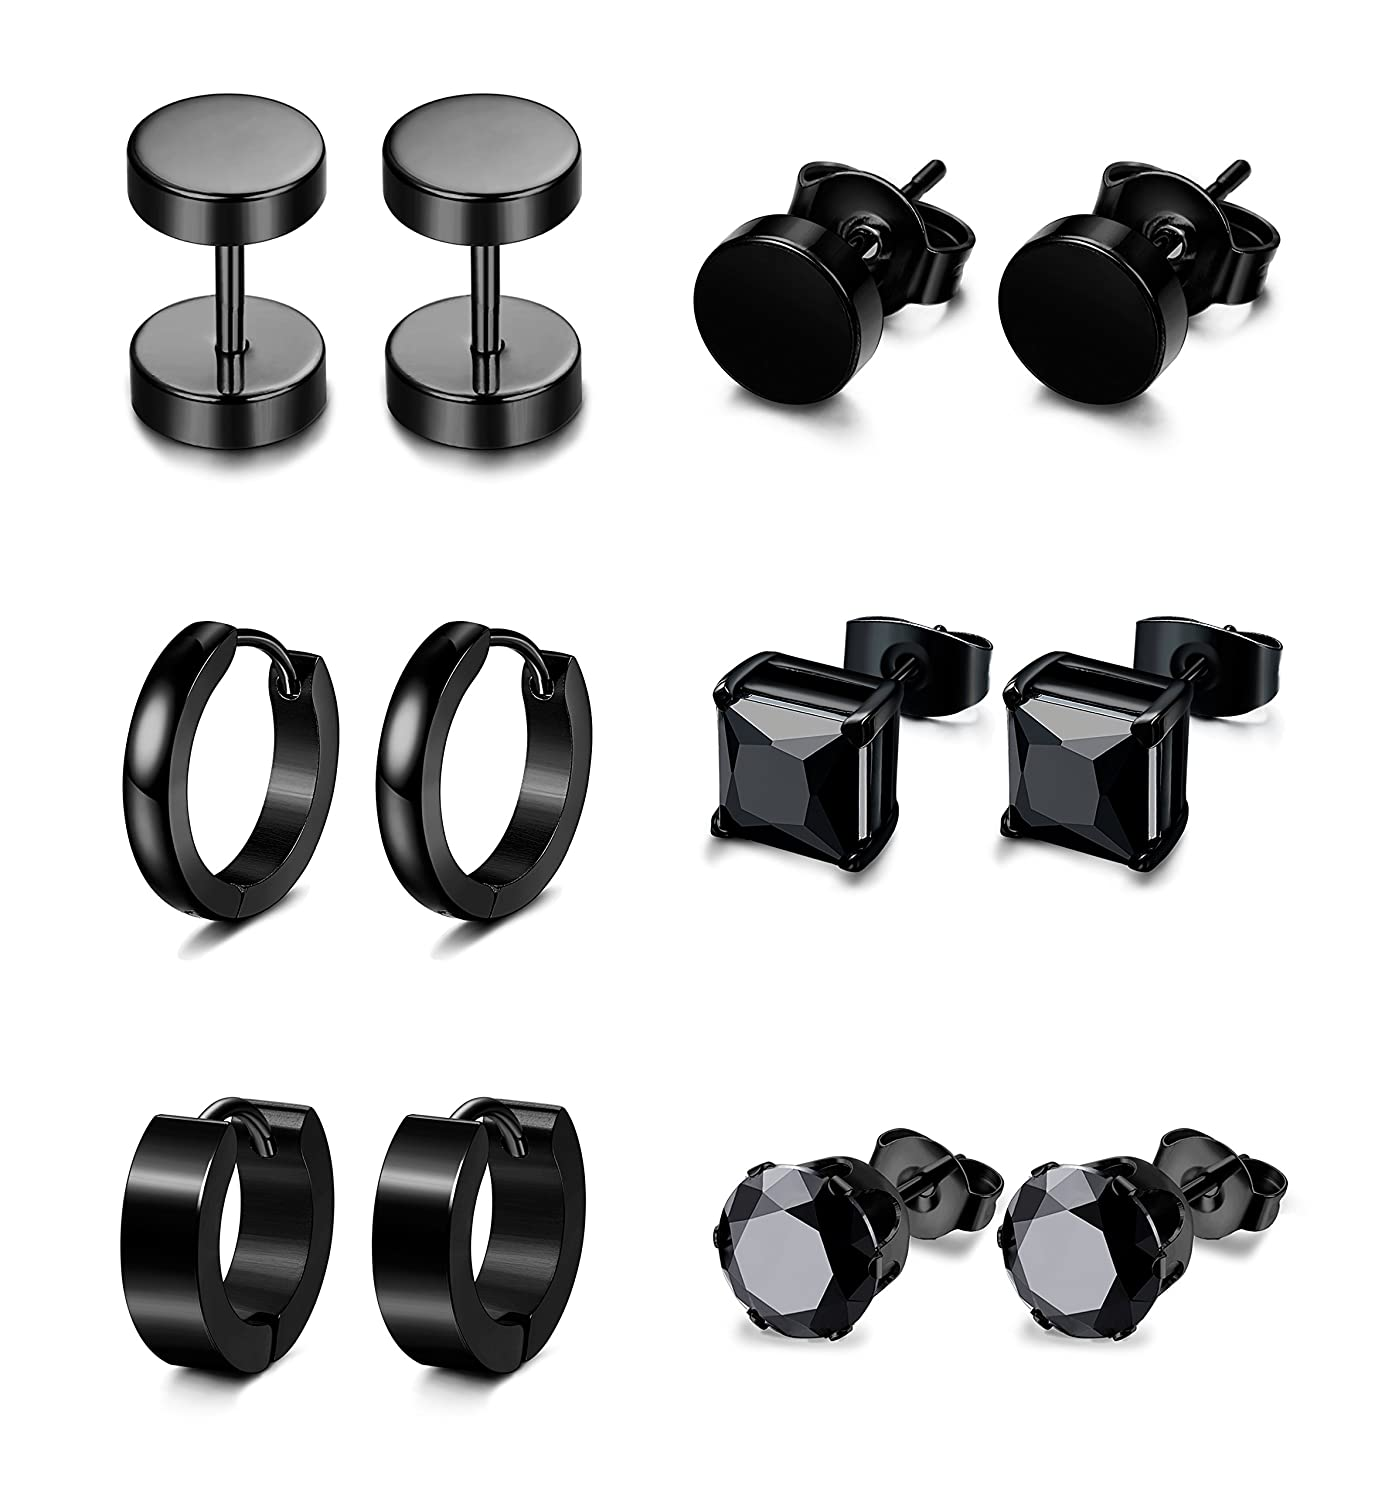 6a4c898608d33 Jstyle 6 Pairs Stainless Steel CZ Stud Earrings for Women Mens Huggie Hoop  Earrings Ear Piercing